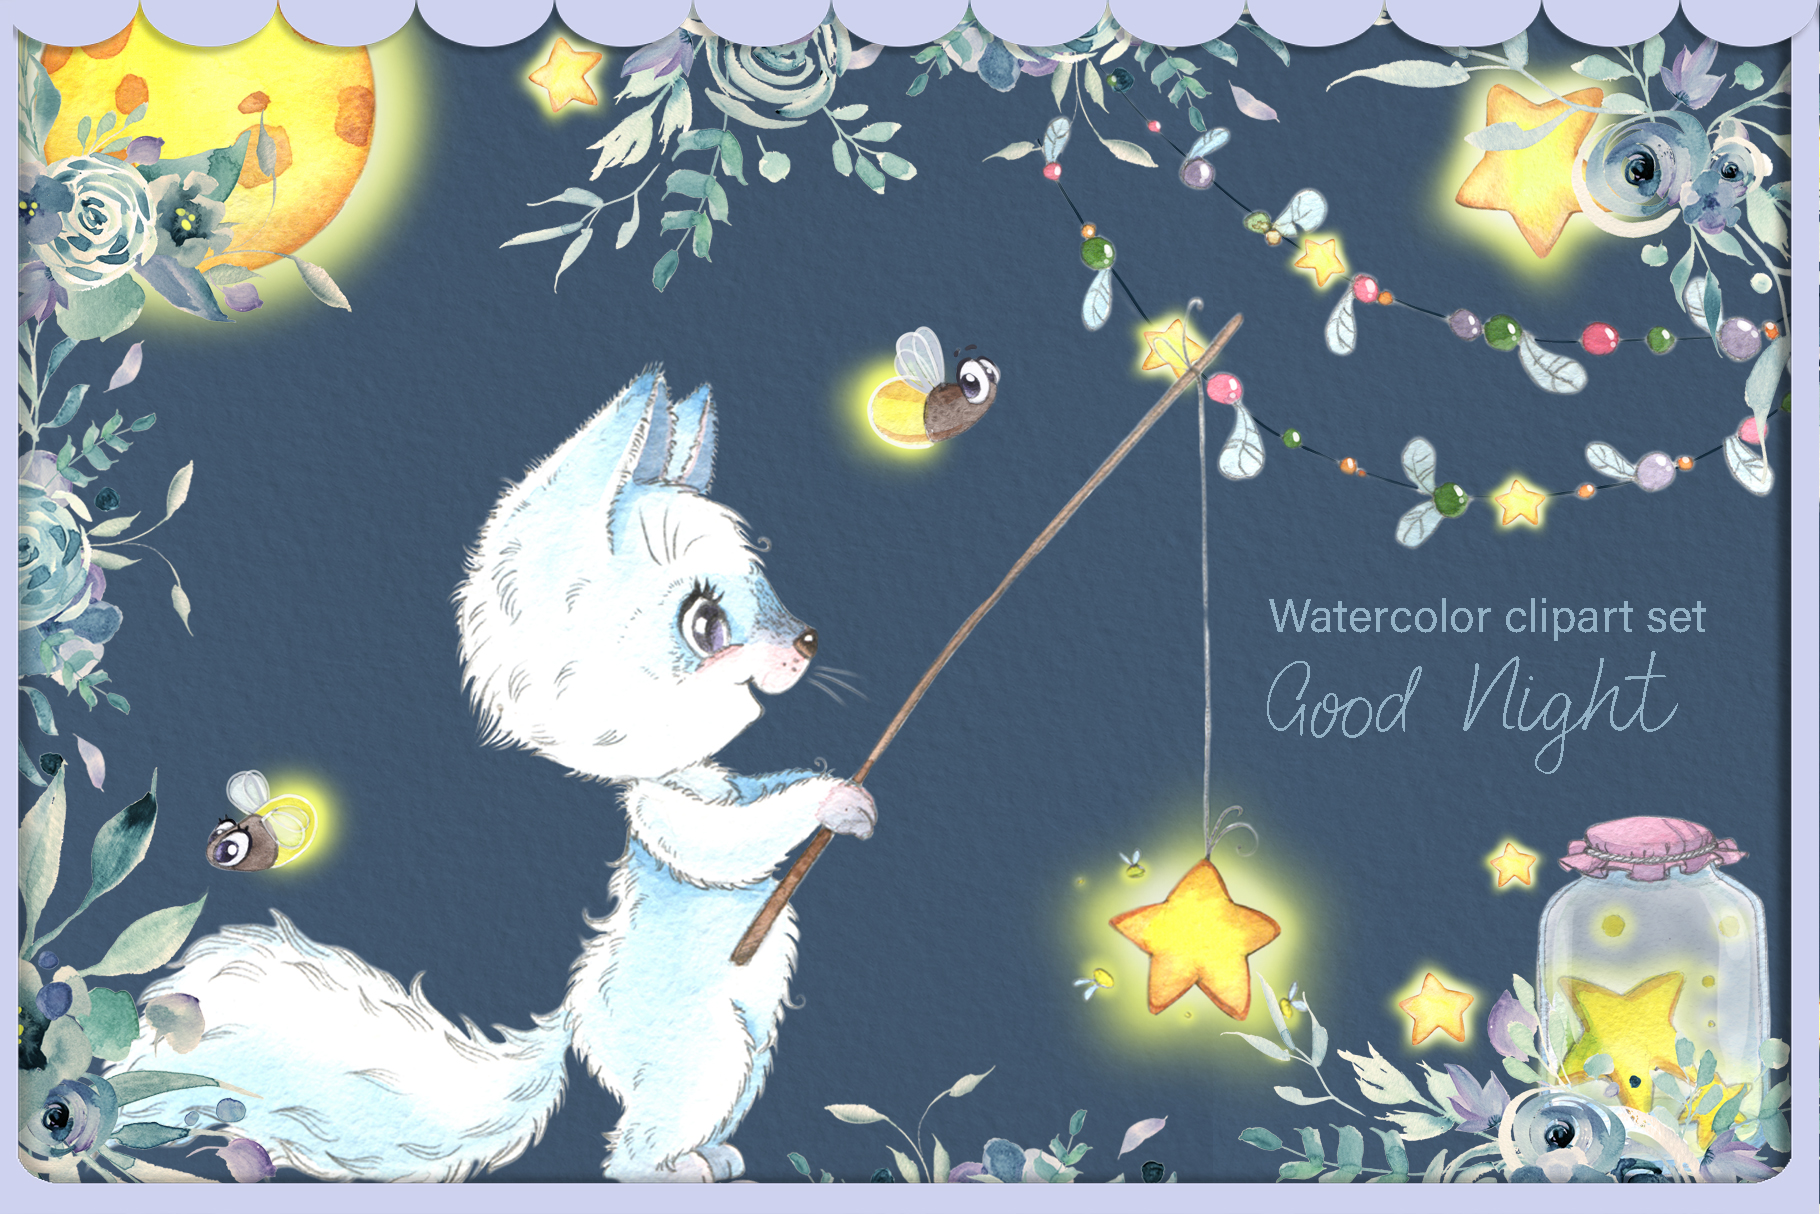 Arctic fox and glowwarm night watercolor clipart kit for bab example image 2